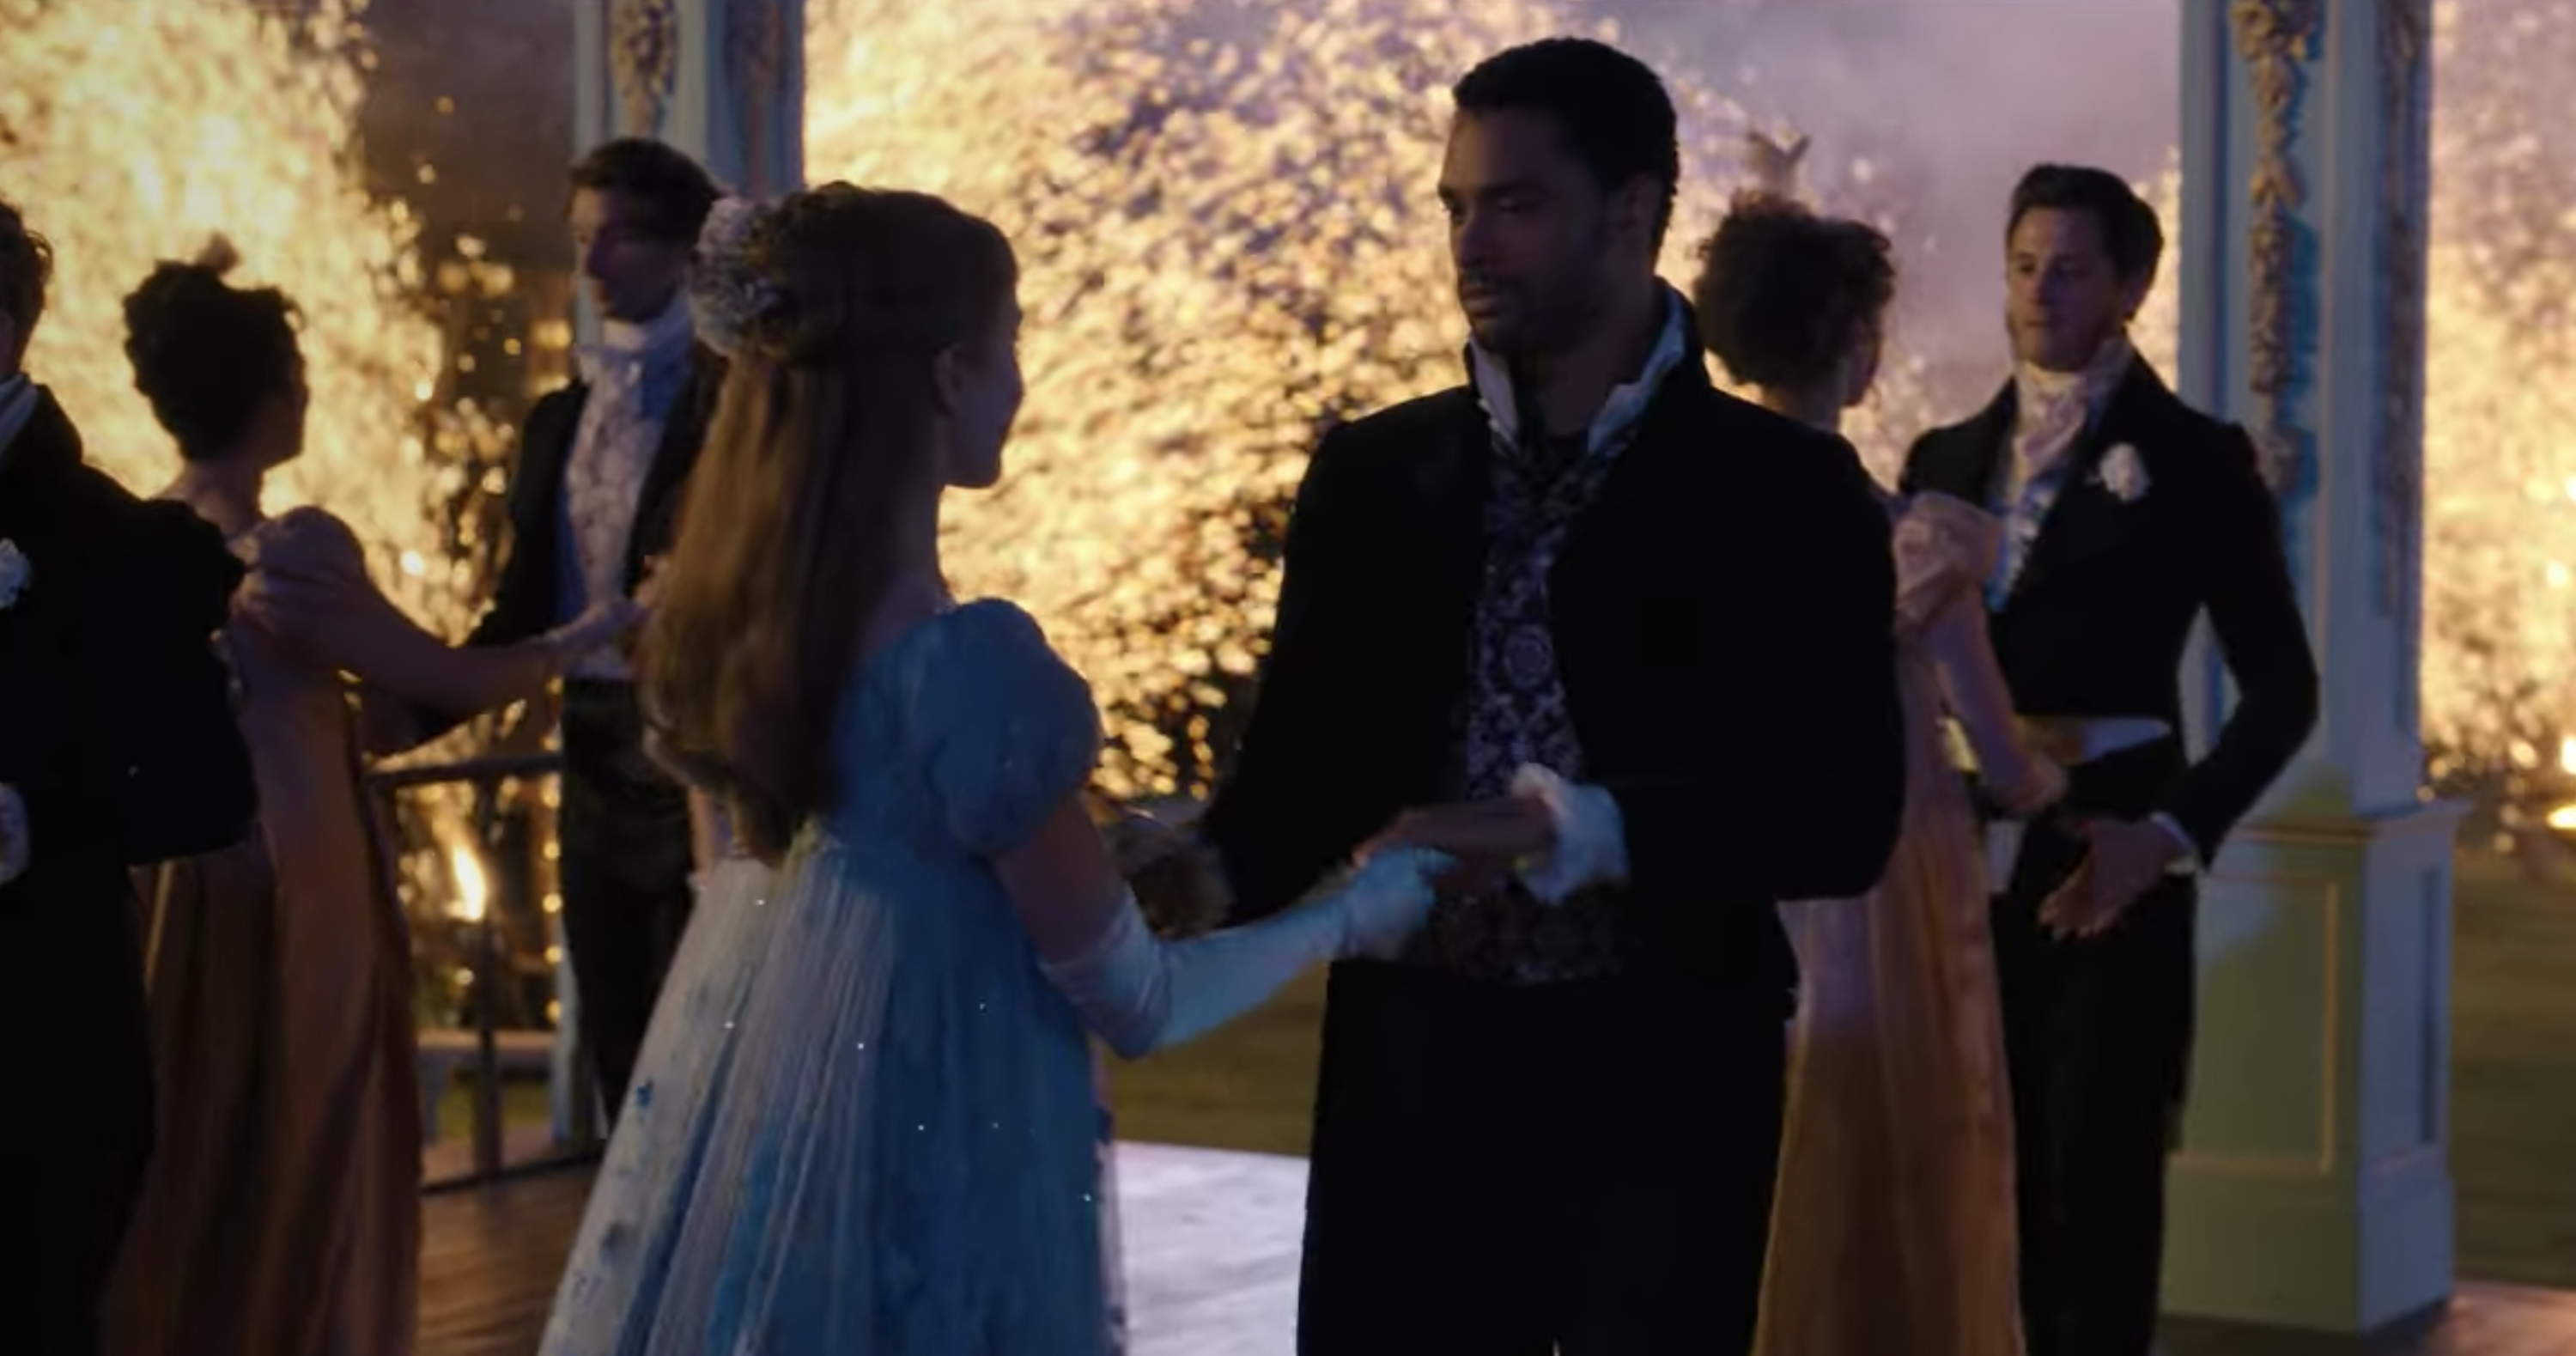 Simon and Daphne dancing with fireworks in the background